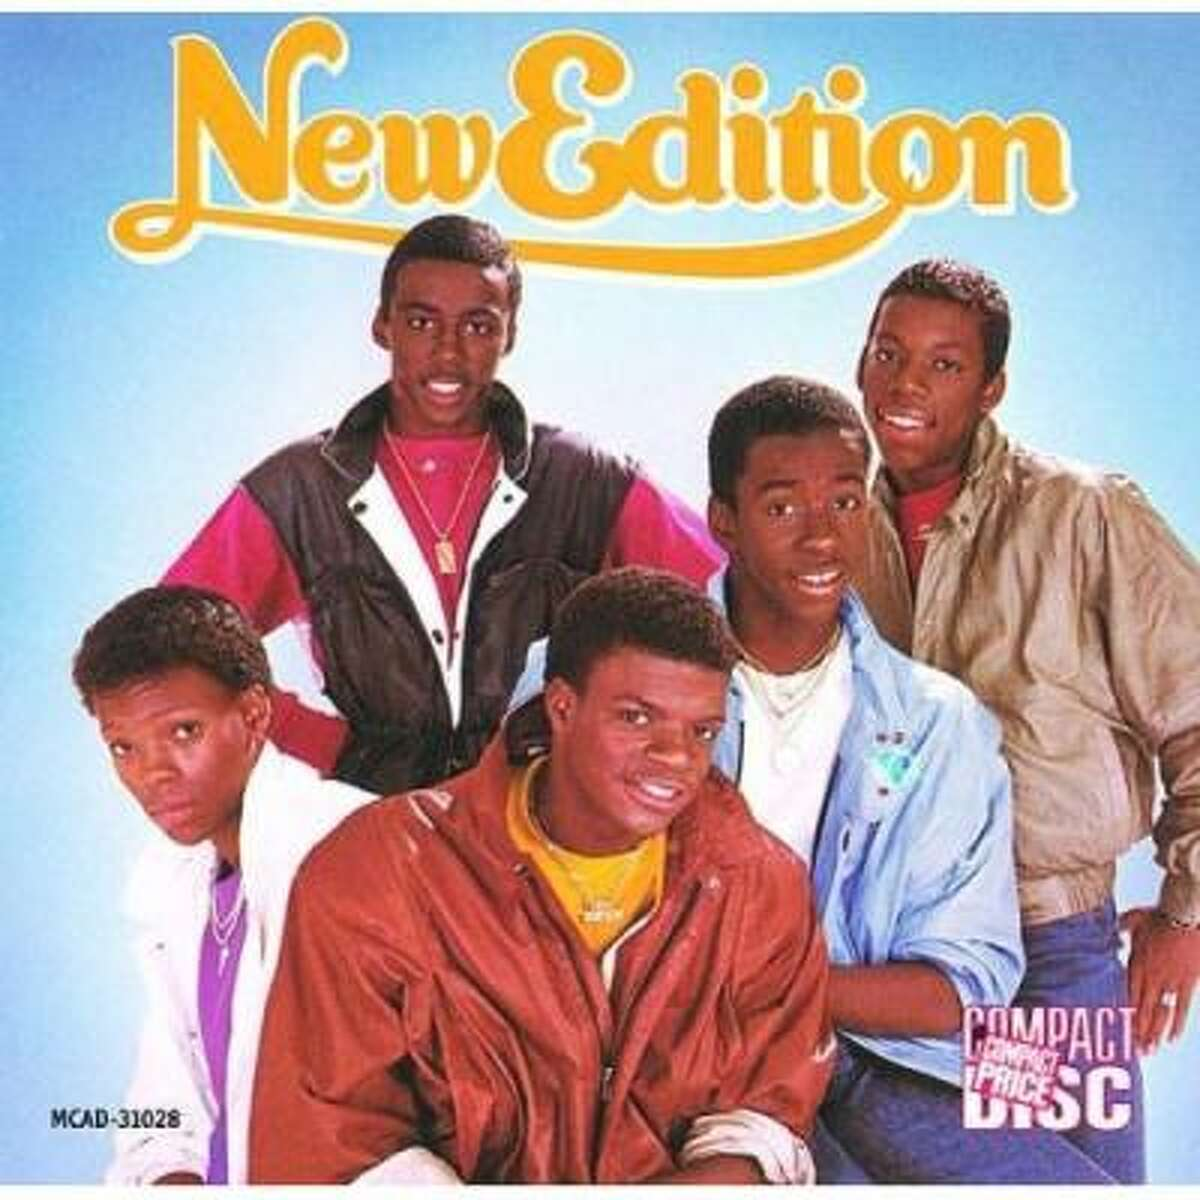 New Edition Many people consider this group to have popularized the